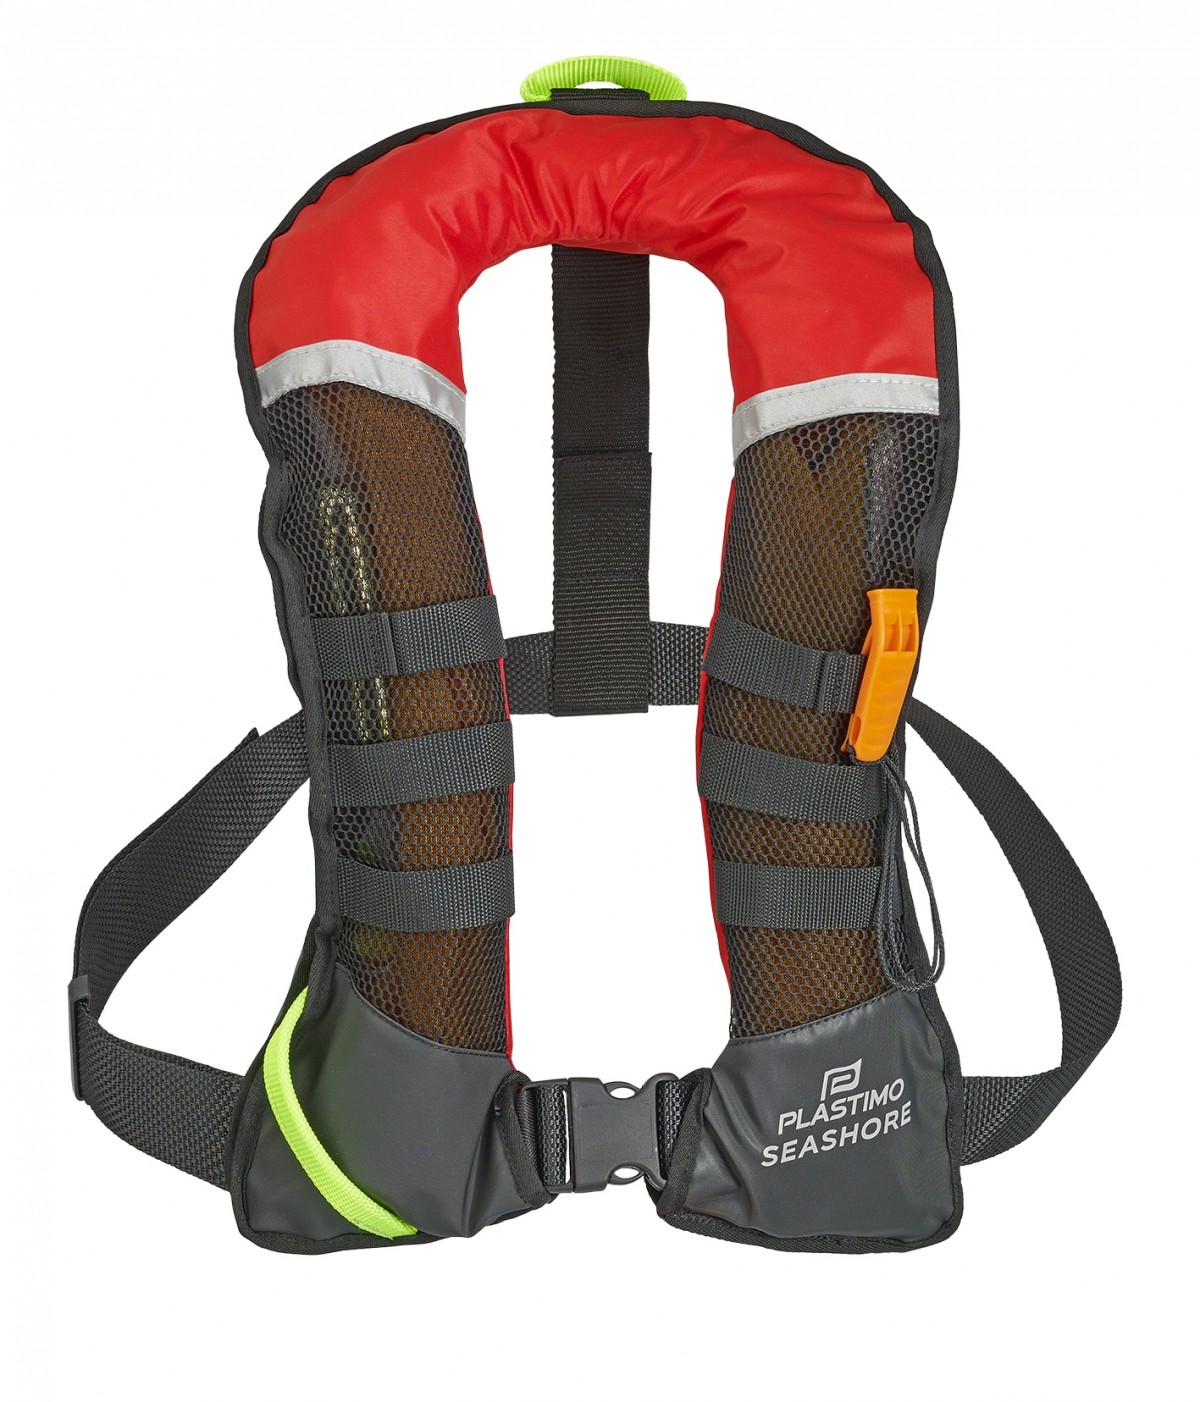 Seashore lifejacket